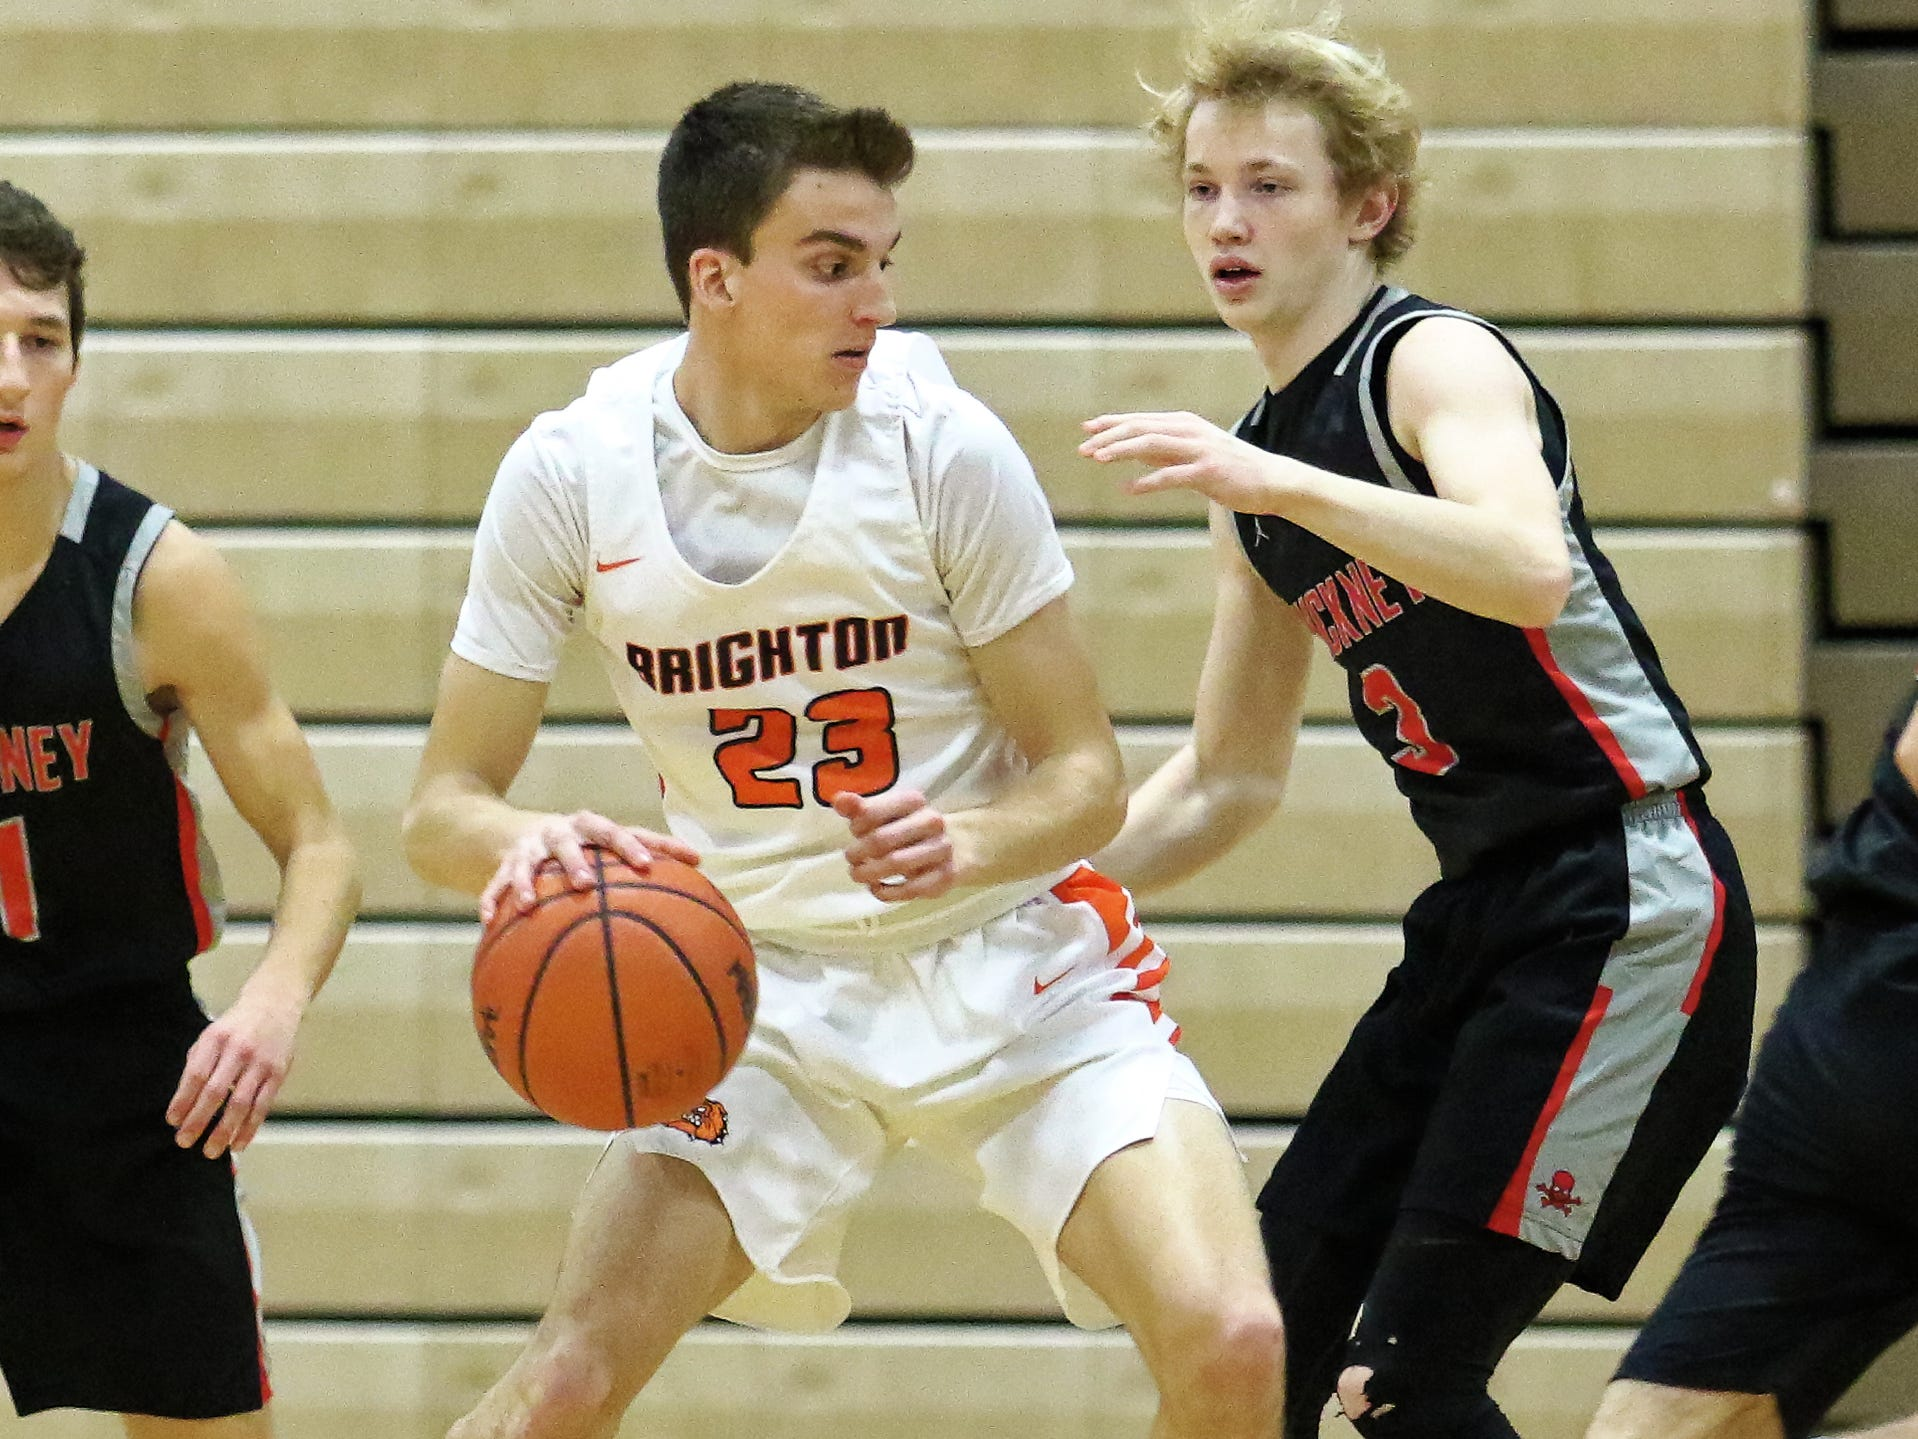 Brighton's Noah Bennett (23), who scored a game-high 14 points, tries to work past Pinckney's Kevin McCoy on Thursday, Jan. 3, 2019.